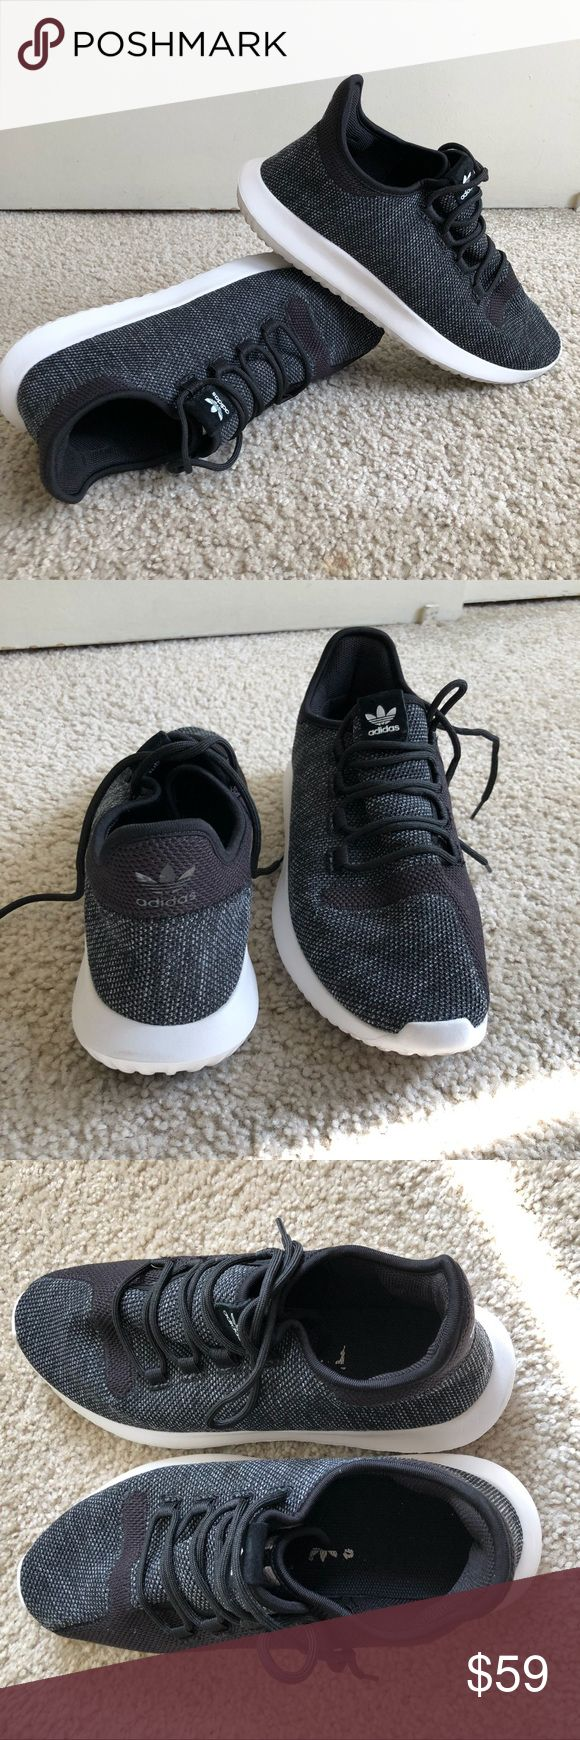 Adidas Tubular Shoes Worn only 2 times!!!!!  Everything is in perfect condition! Like new!  Men's size 11 🚀  Same day shipping! adidas Shoes Sneakers